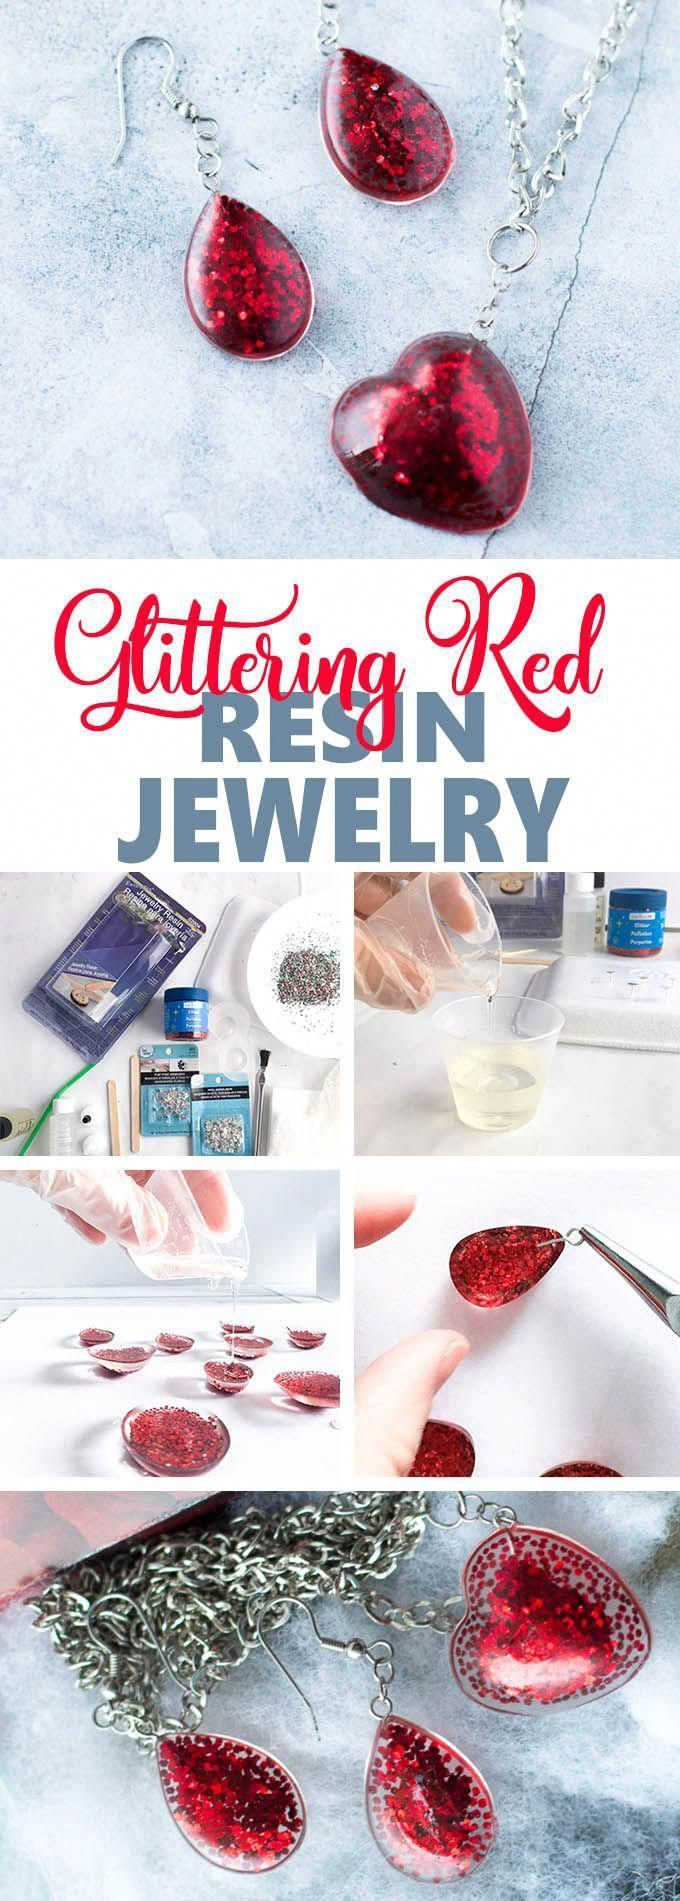 DIY Resin Jewelry for Galentine's Day